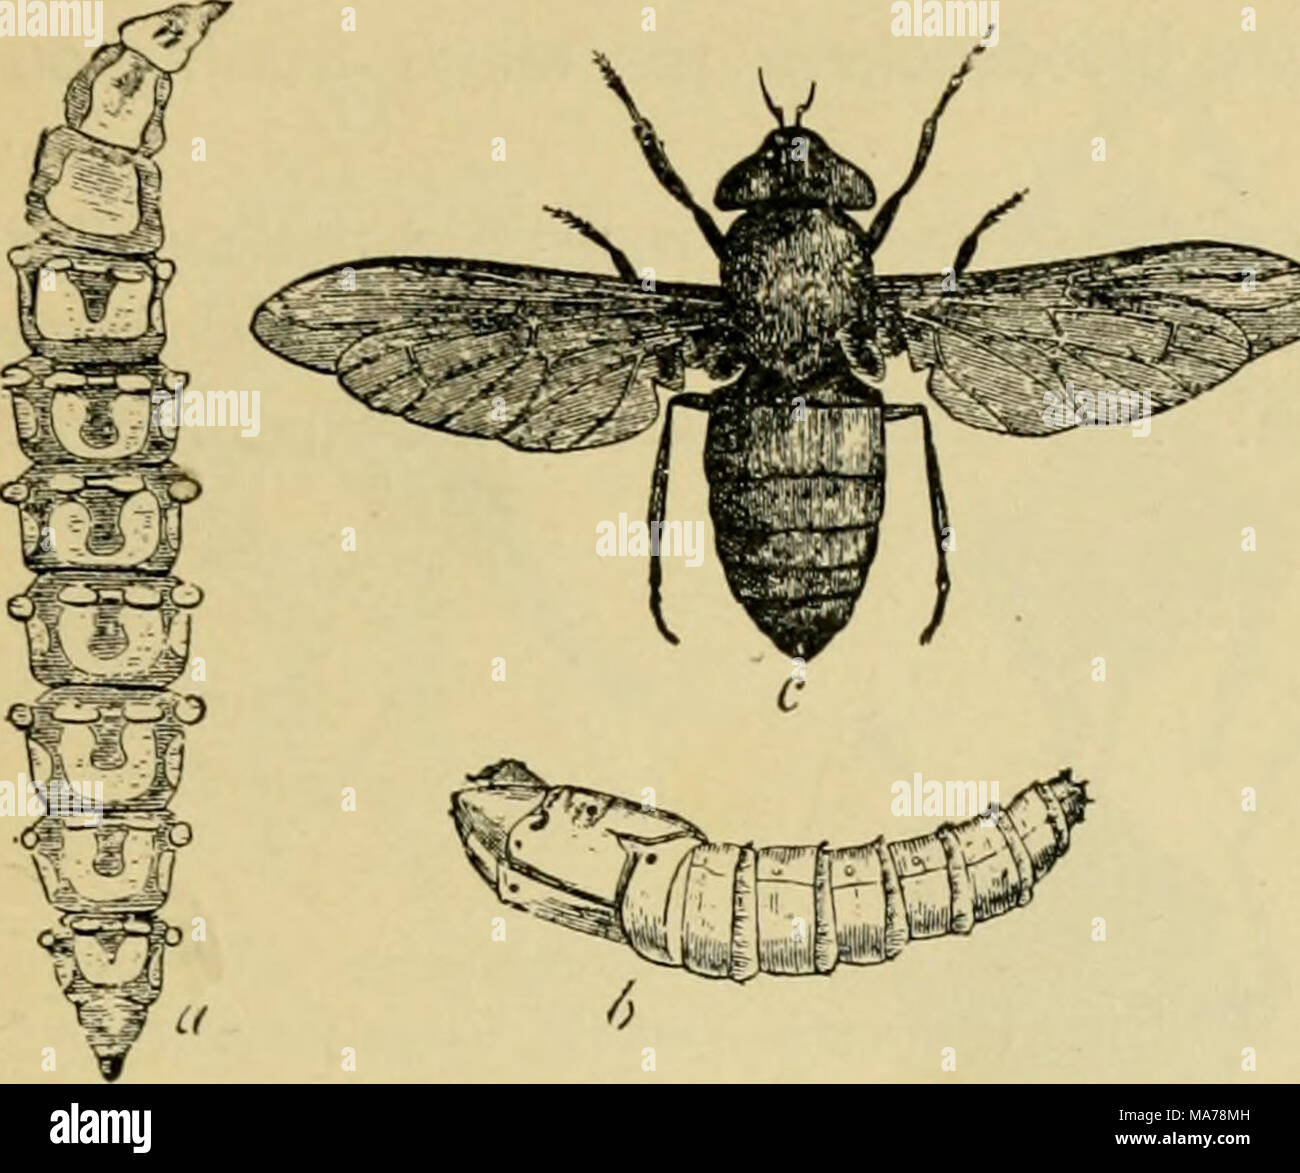 ". Elementary entomology . Fig. 361. Horse-fly {Tahanus atratics) n, lan'a ; fi, pupa ; c, adult, (.fter Riley) SHORf-HORNEl) FLIES {BRACHYCEKA) In this section the antennae are composed of from three to five segments, the famihes being divided into three groups according to the structure of the  V/ / antennae, and being fur- ther distinguished by w^^ ^^-""•••""""?=grr^^^)^.^=r:^^^grr^^^^ the wing-vcnation. .3 X. , —..-^jMBirfiii* . . ^ ev In the first group the third segment of the an- tenna is clearly ringed, showing that it is made up of several segments grown together. Horse-f - Stock Image"